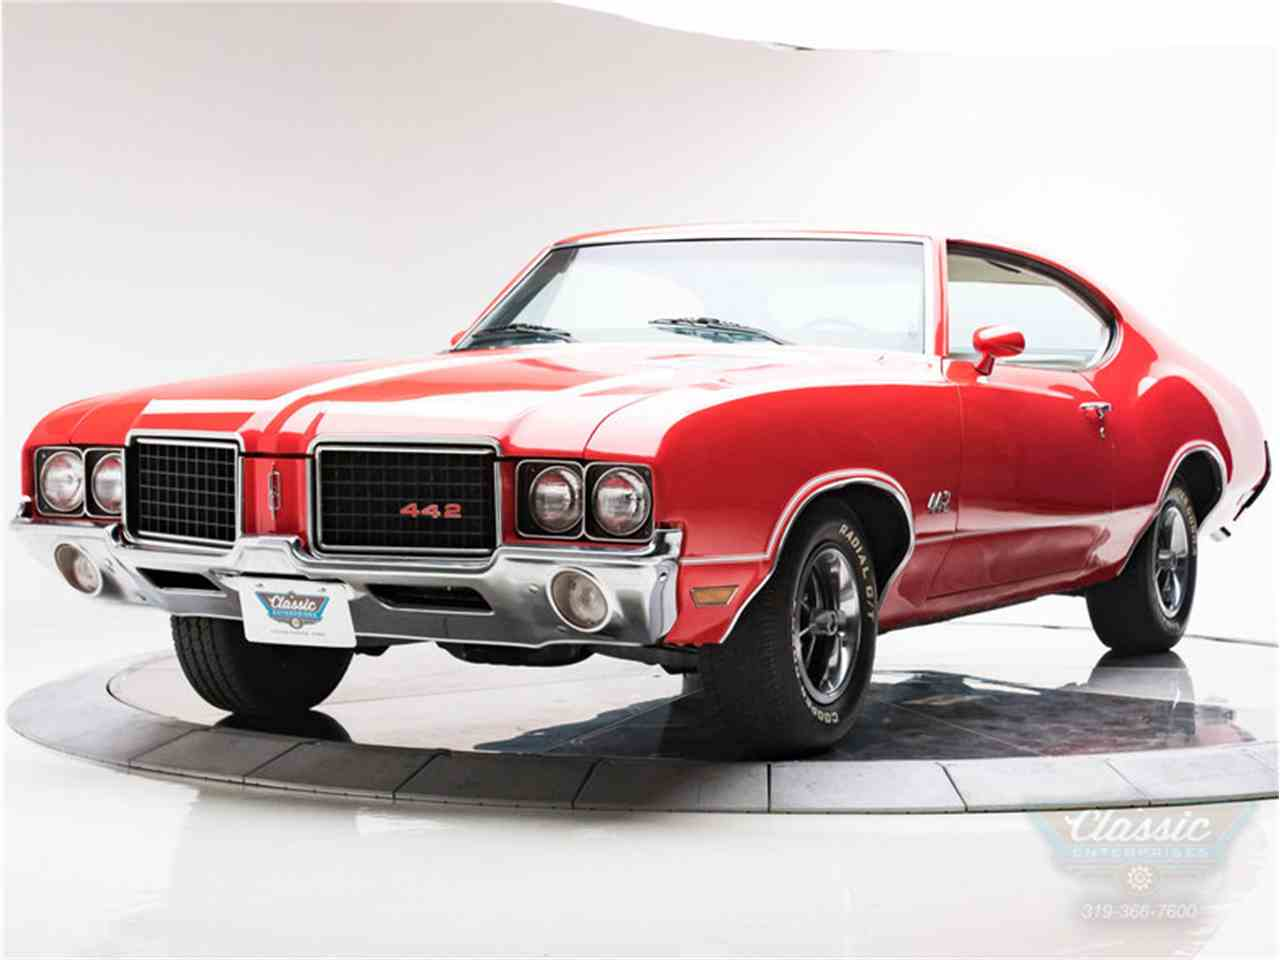 Large Picture of 1972 Cutlass located in Iowa - $28,950.00 Offered by Classic Enterprises - HIAM